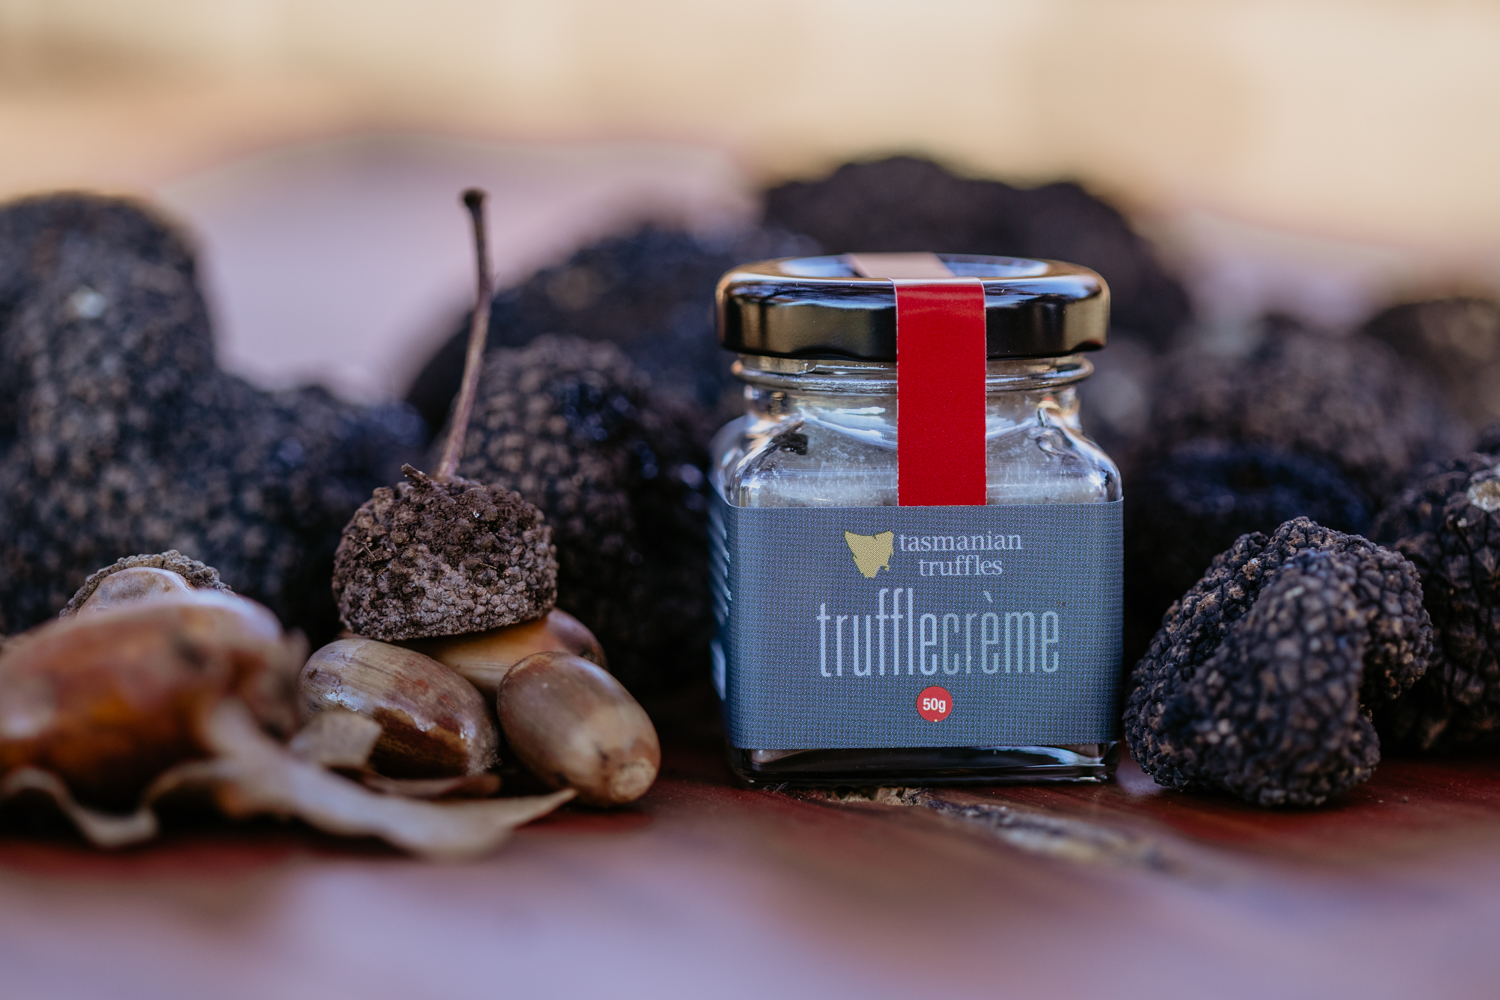 Truffle tour and tasting with TasTruffles